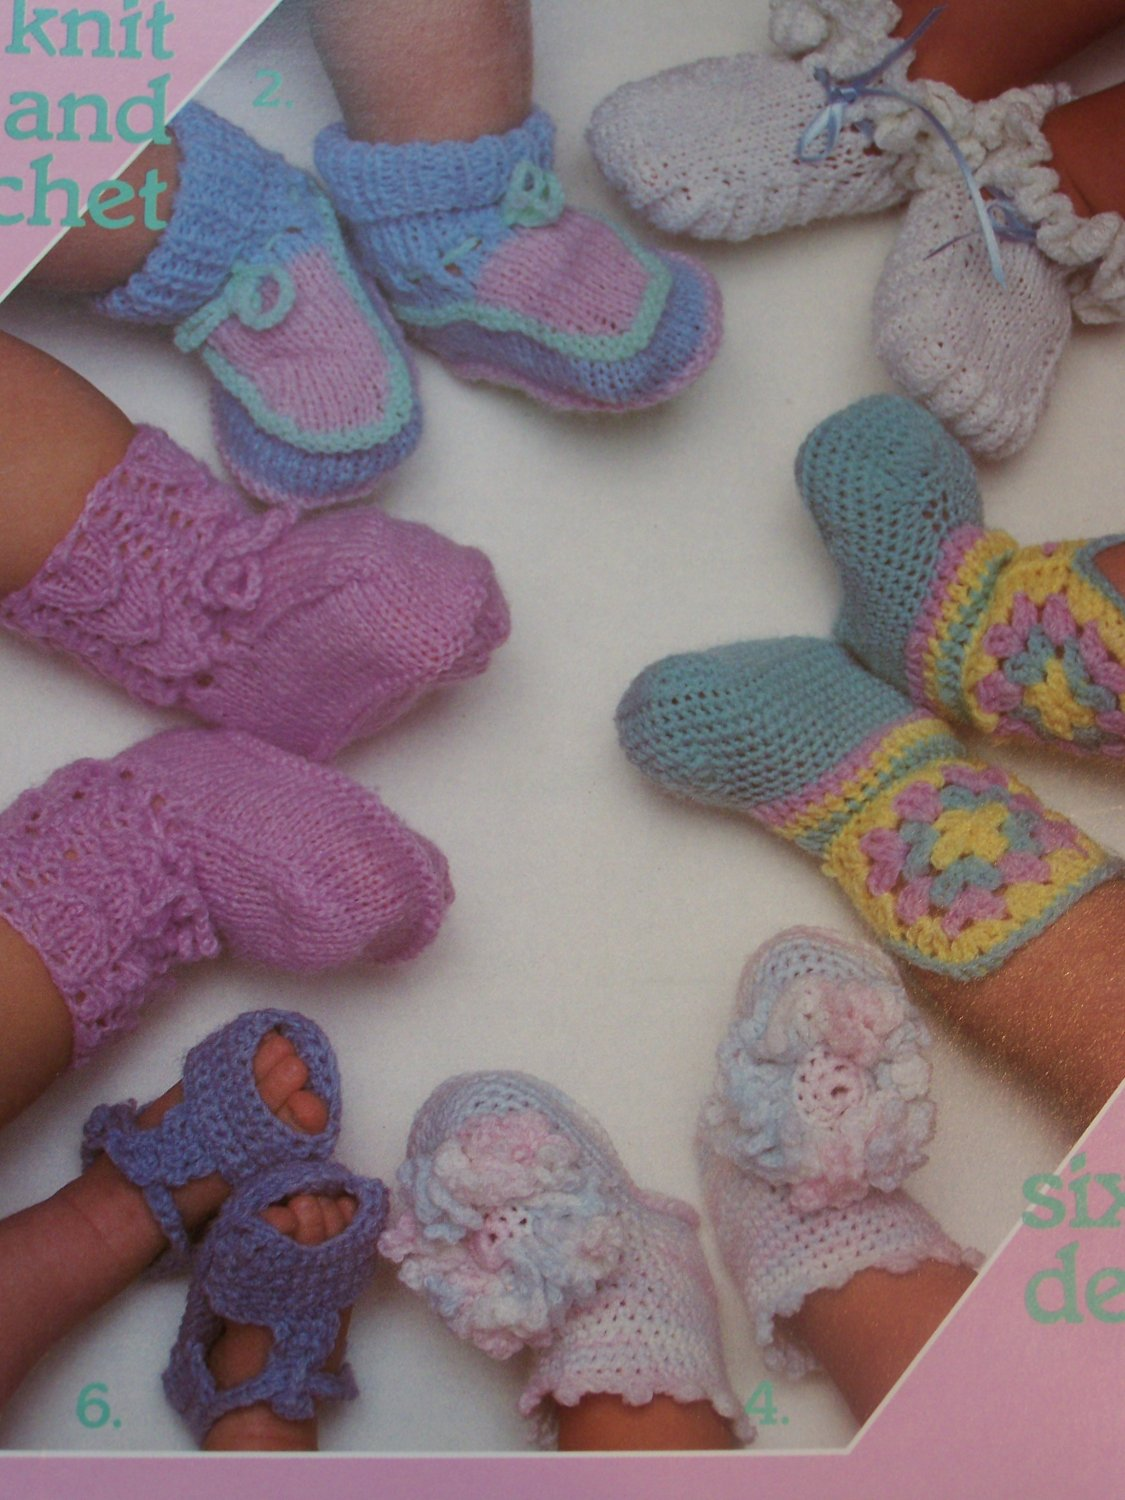 Crochet Pattern Baby Booties Orchid Sandals : Vintage Baby Booties Knitting & Crochet Patterns Shoes ...